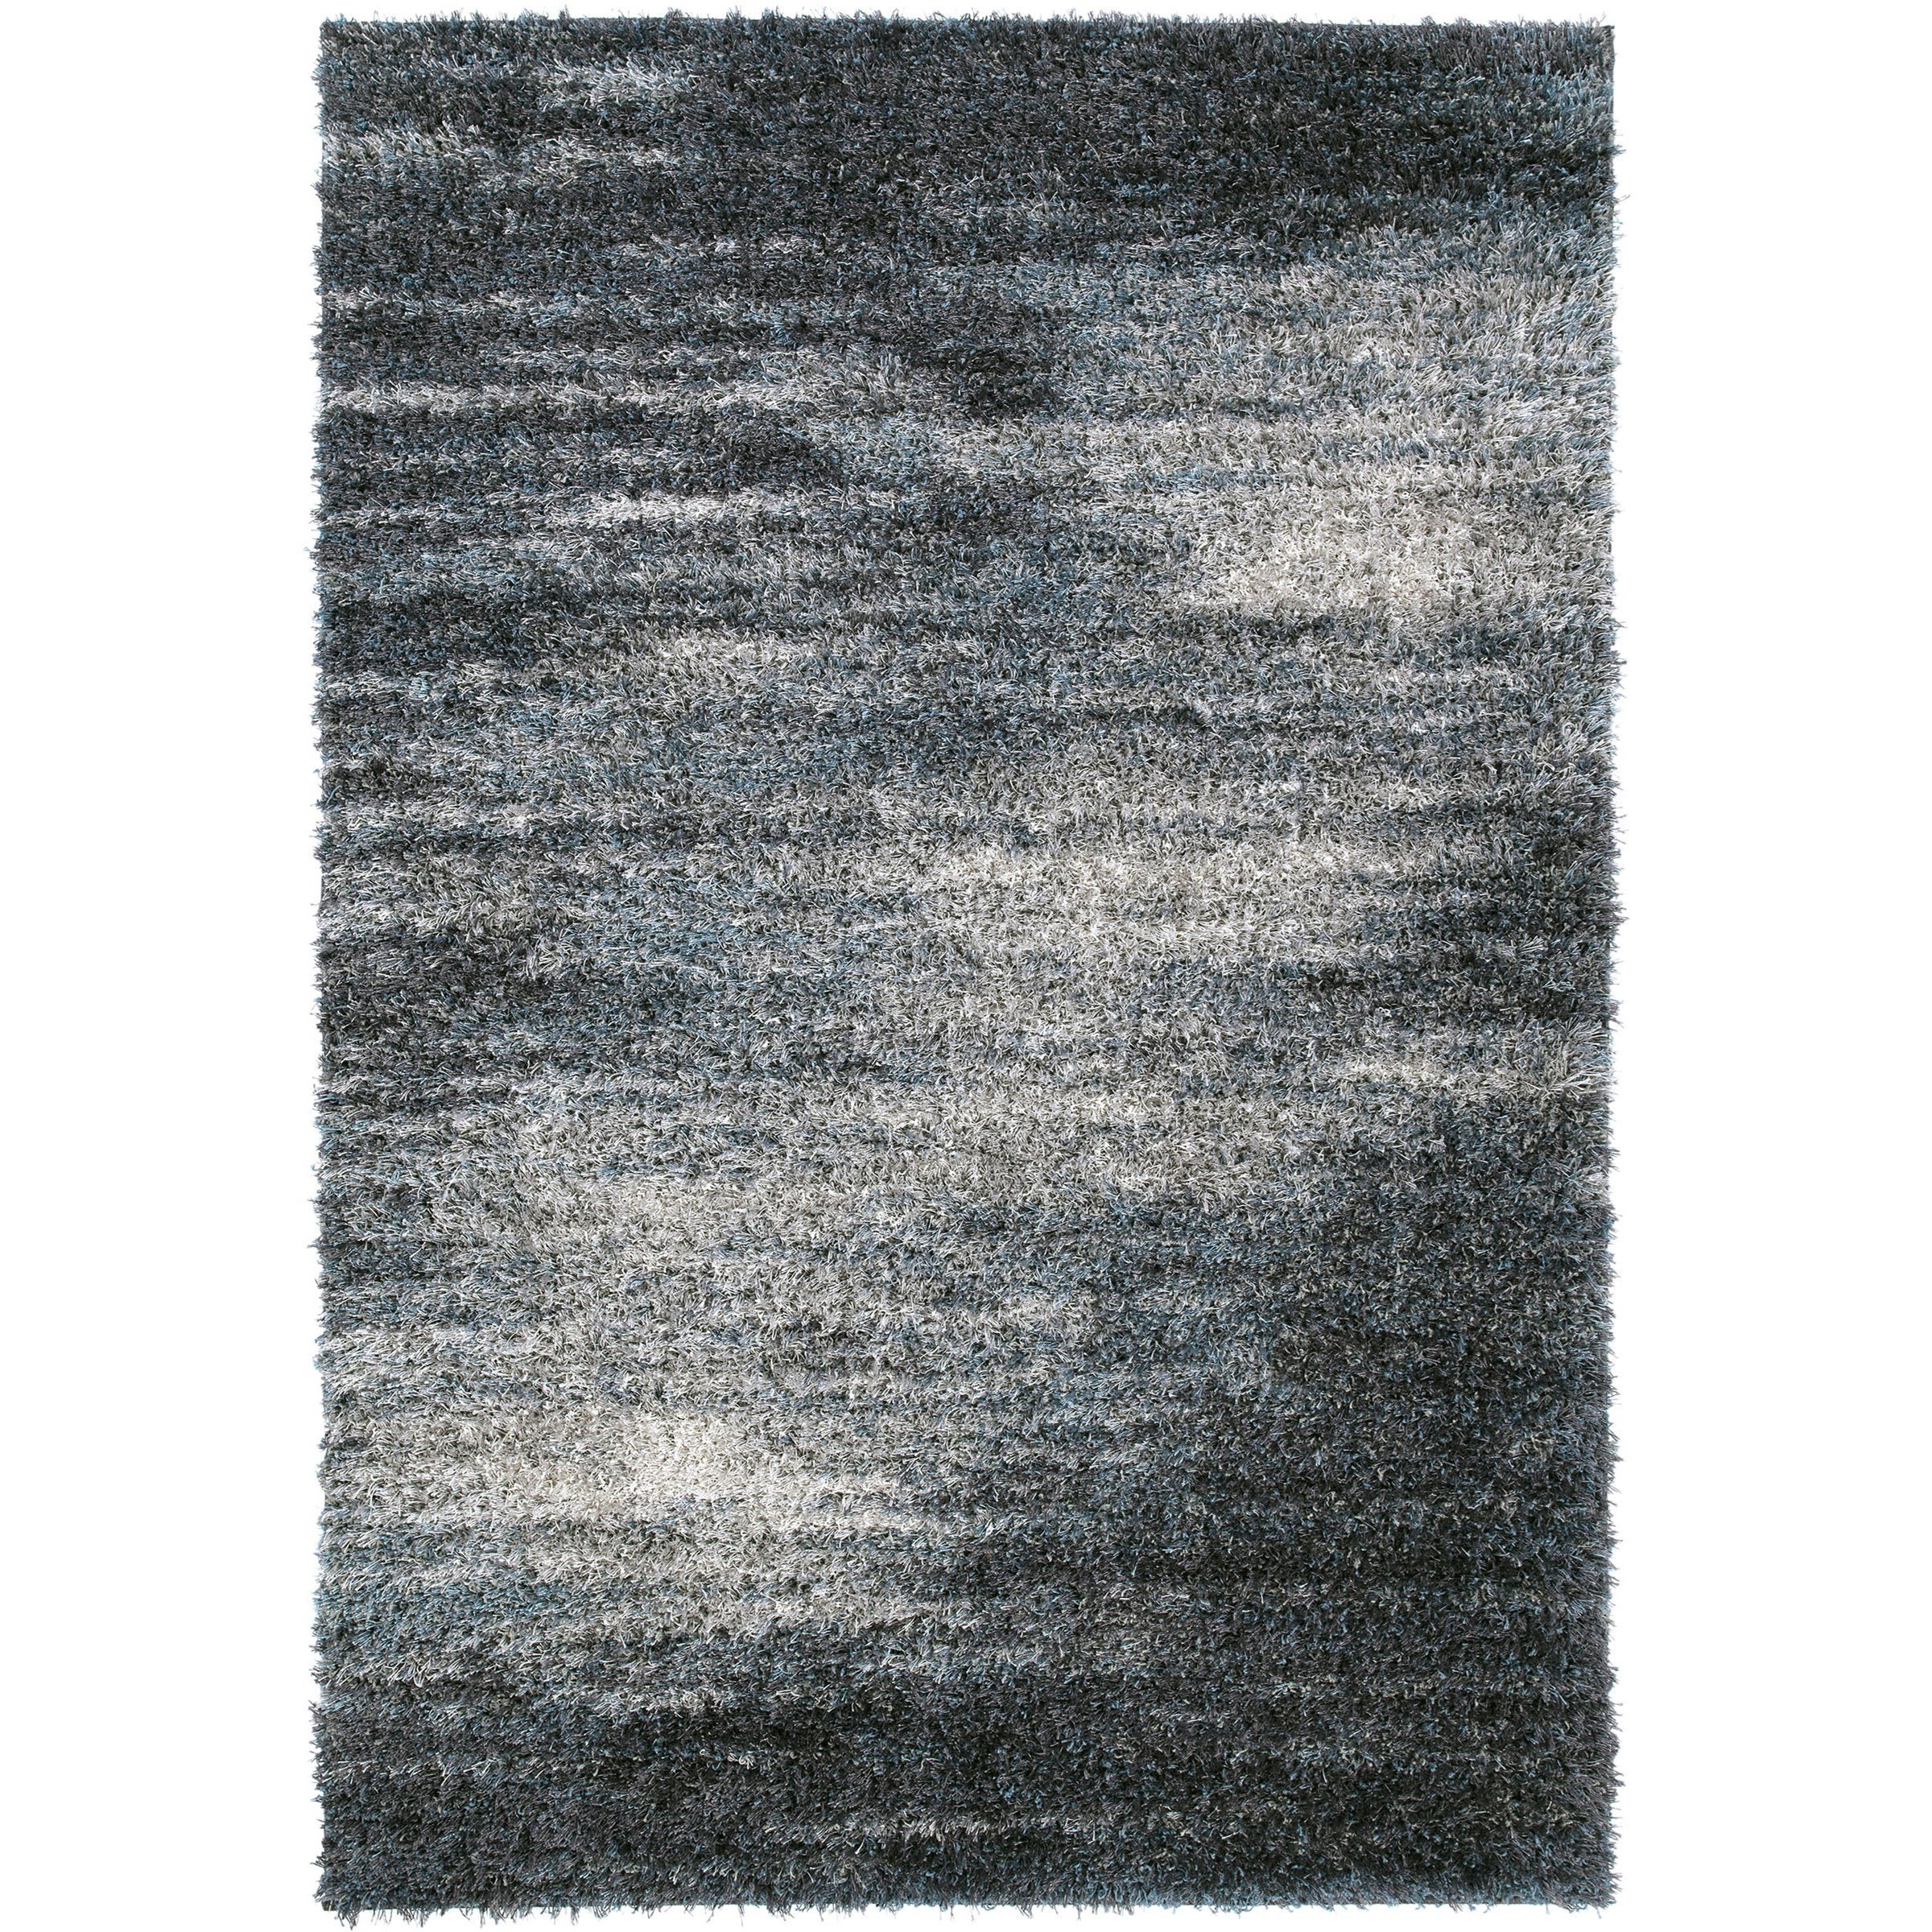 """Arturro Charcoal 9'6""""X13'2"""" Rug by Dalyn at Sadler's Home Furnishings"""